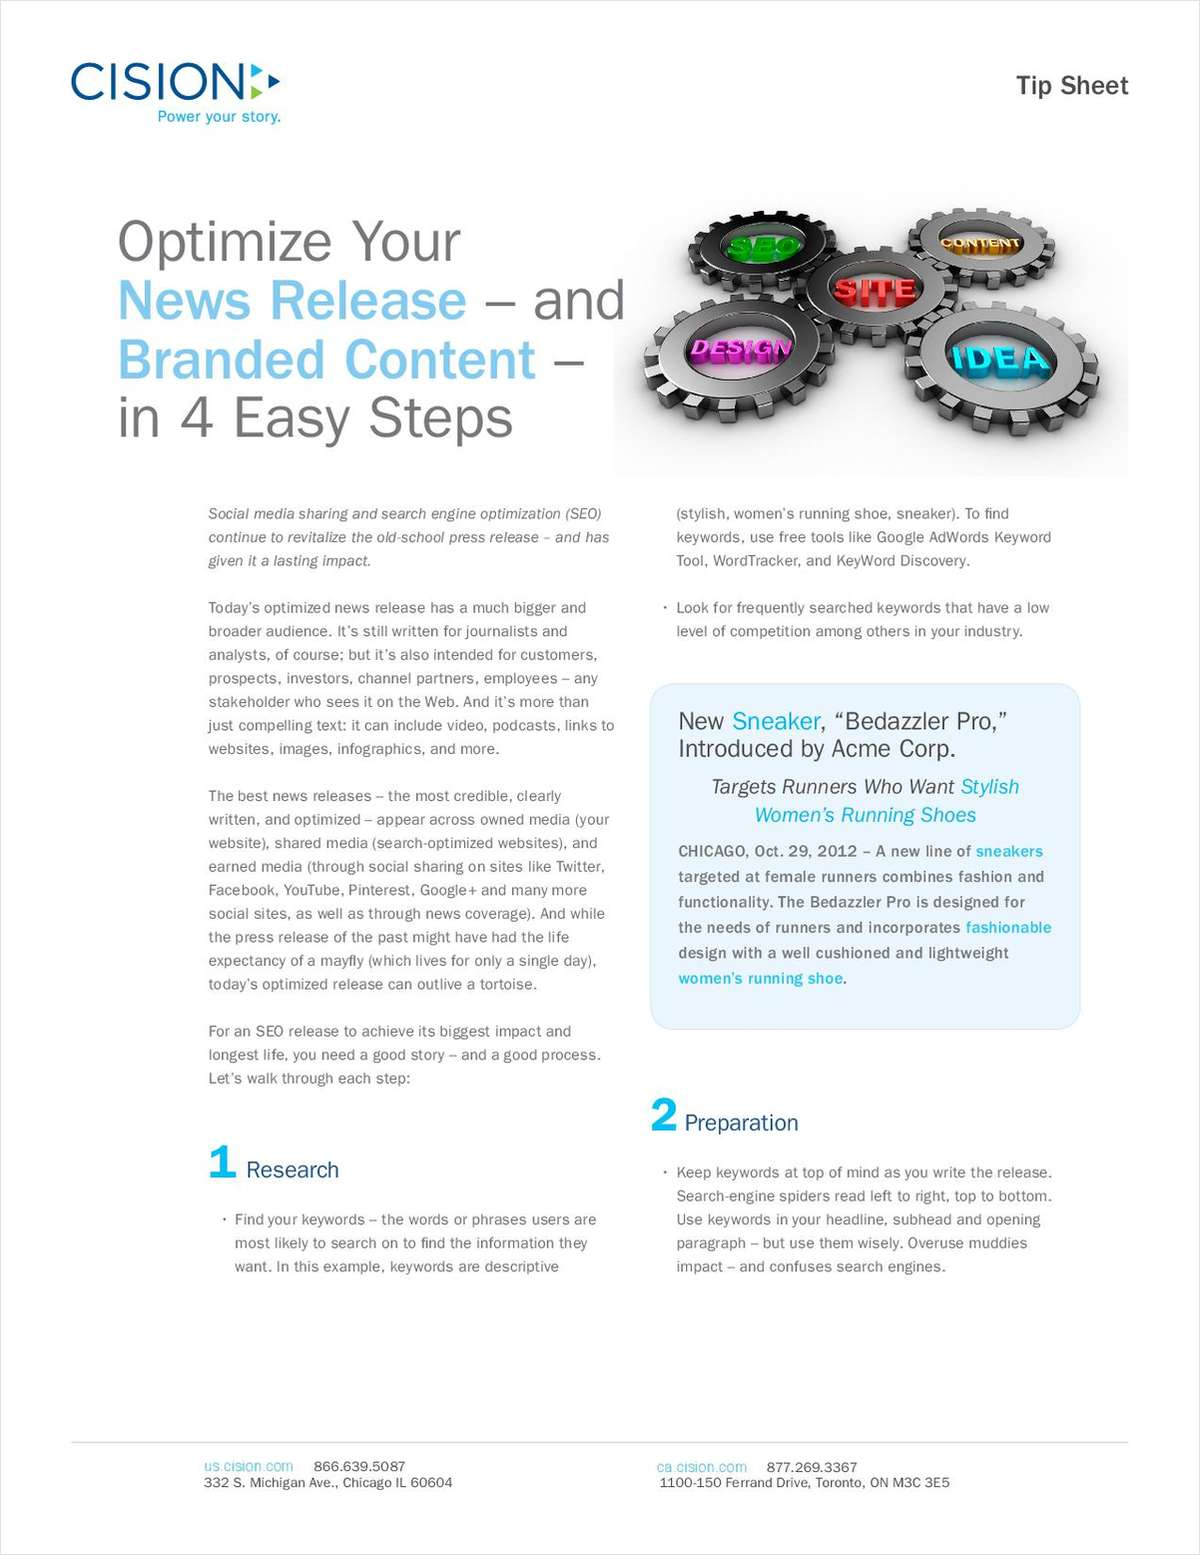 Optimize Your News Release and Branded Content in 4 Easy Steps